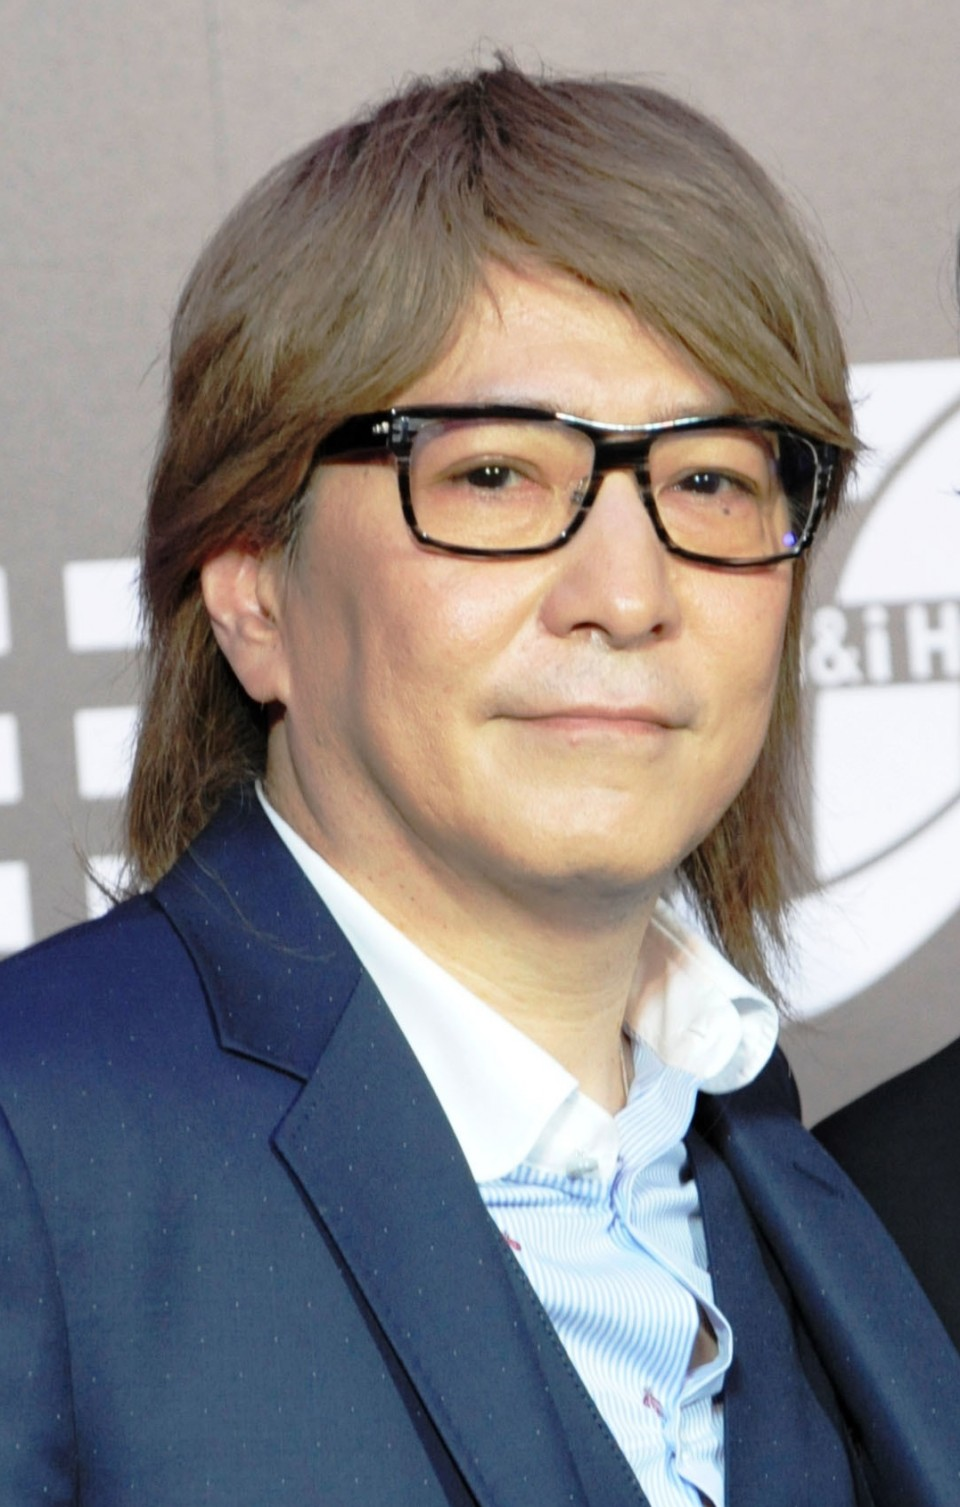 J-pop producer Komuro to end music career after reports of